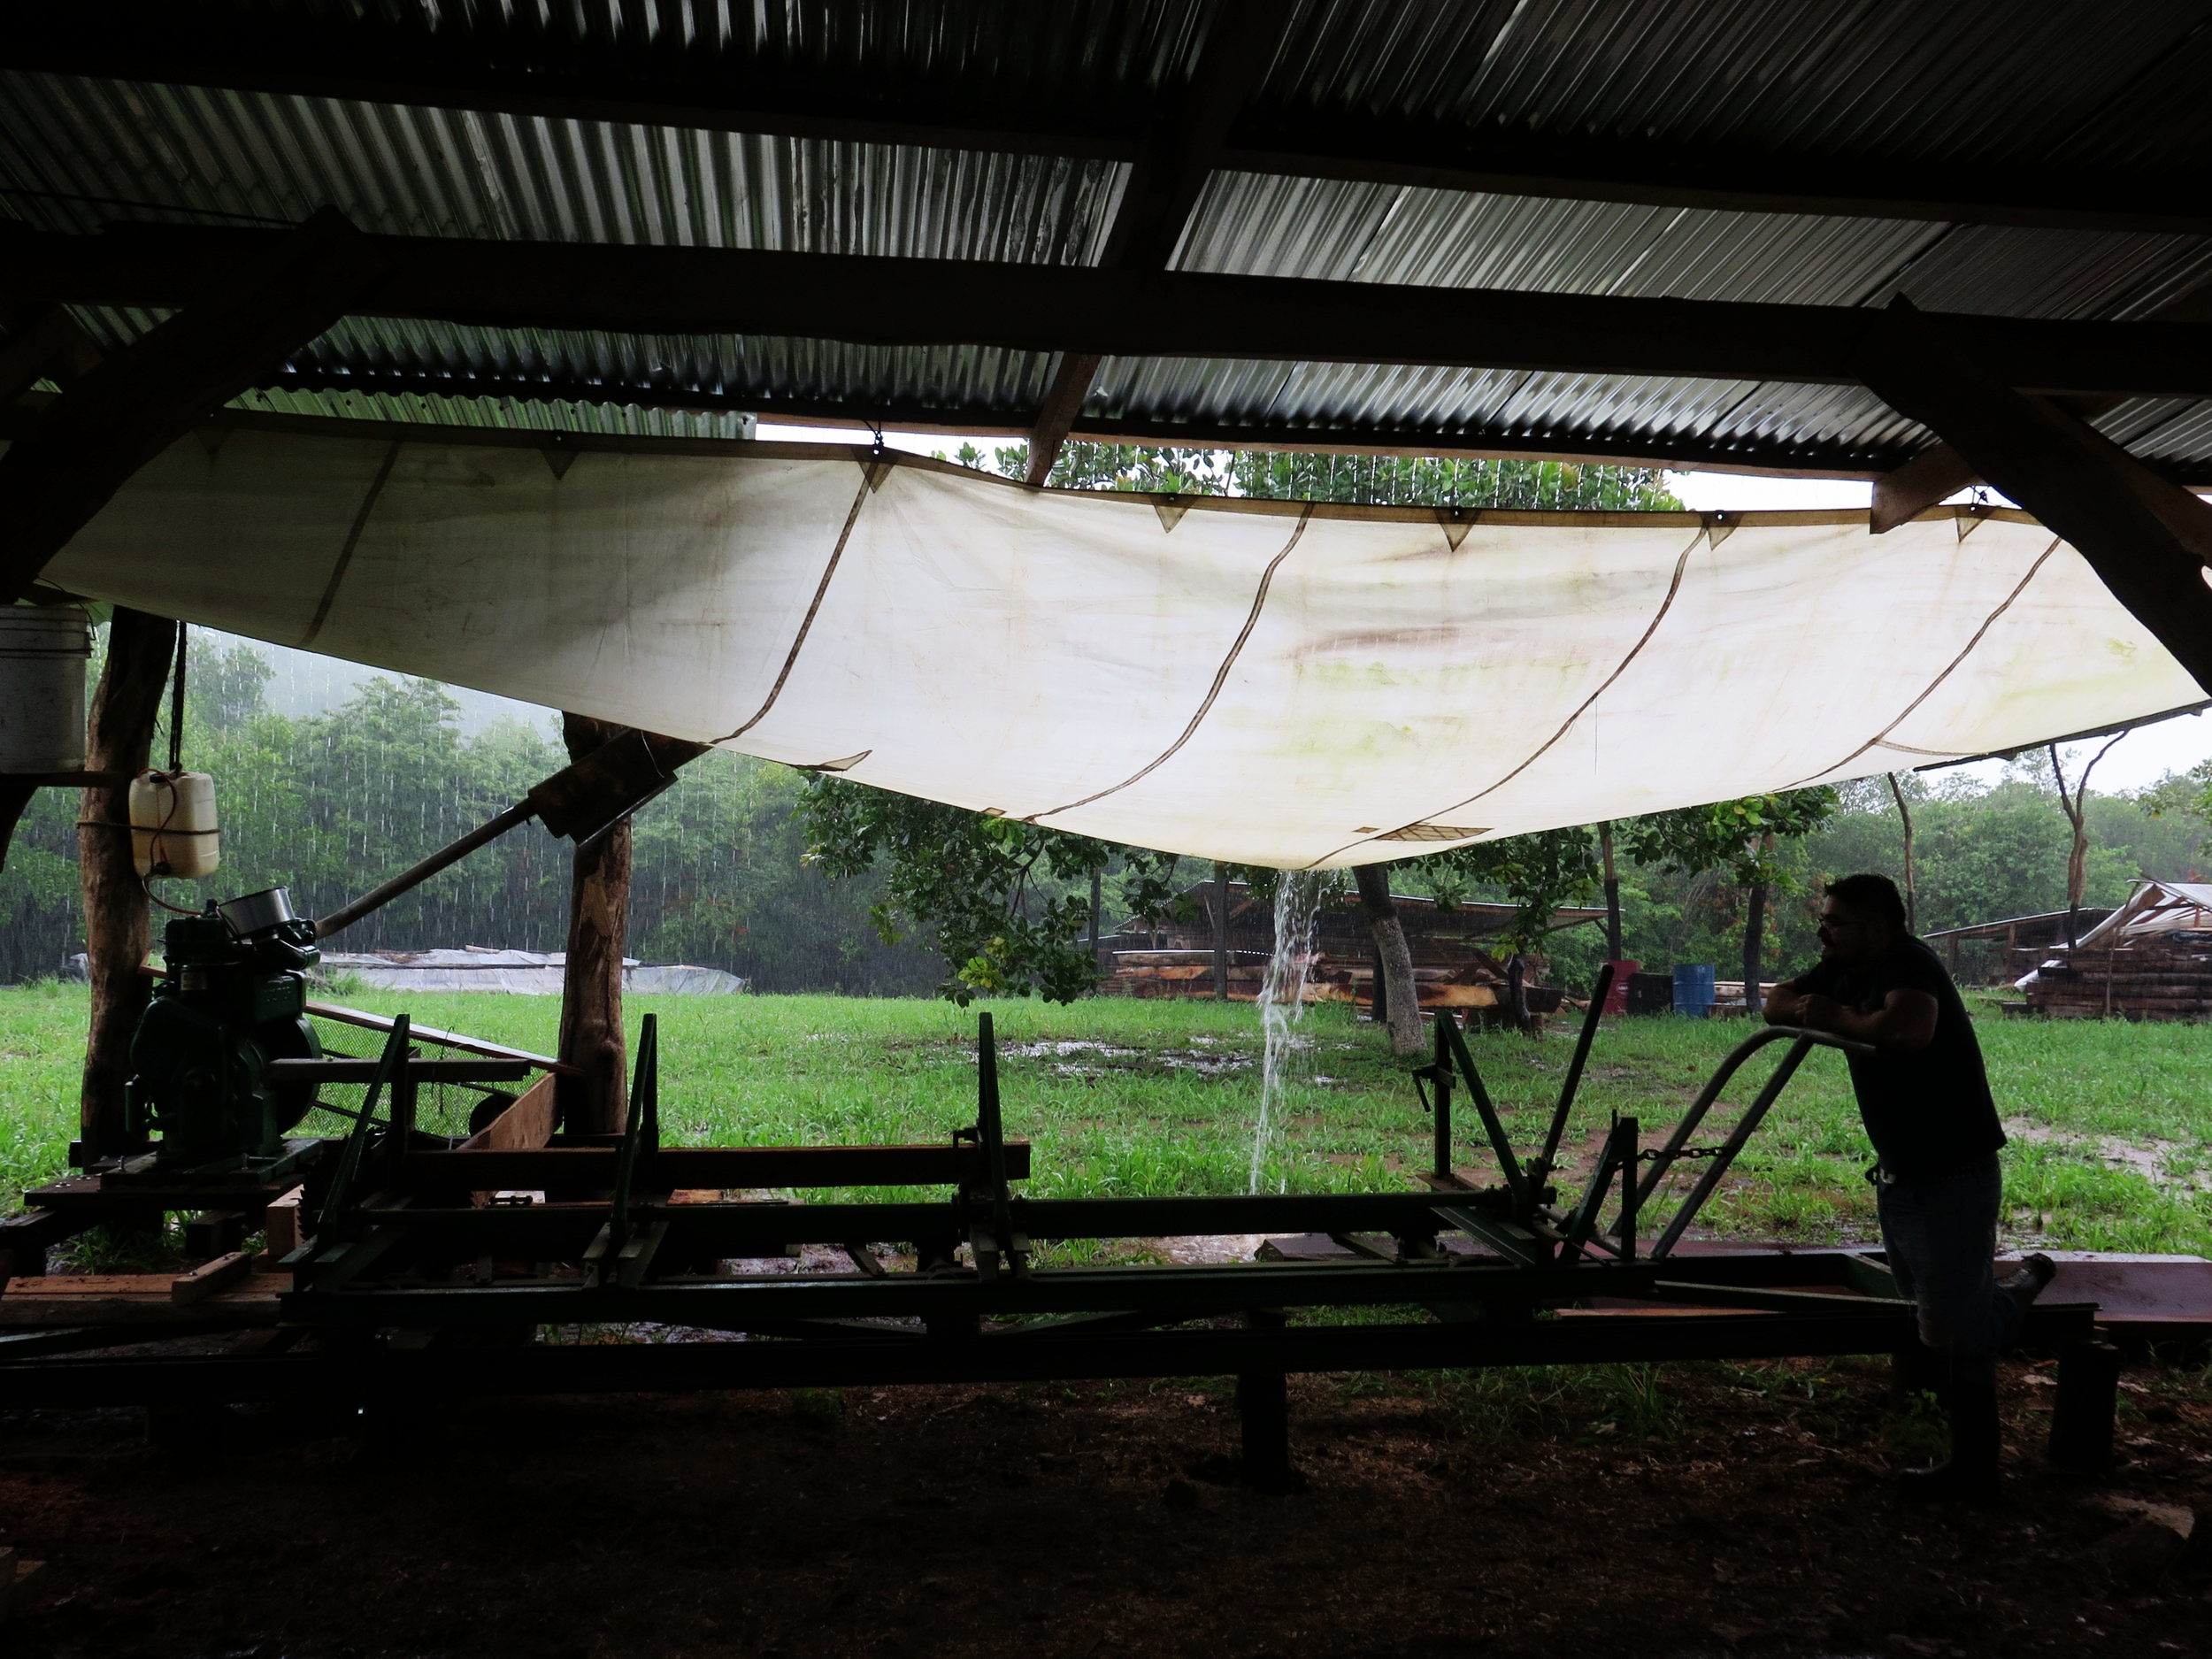 Paolo hanging on the sawmill under a sail of rain.